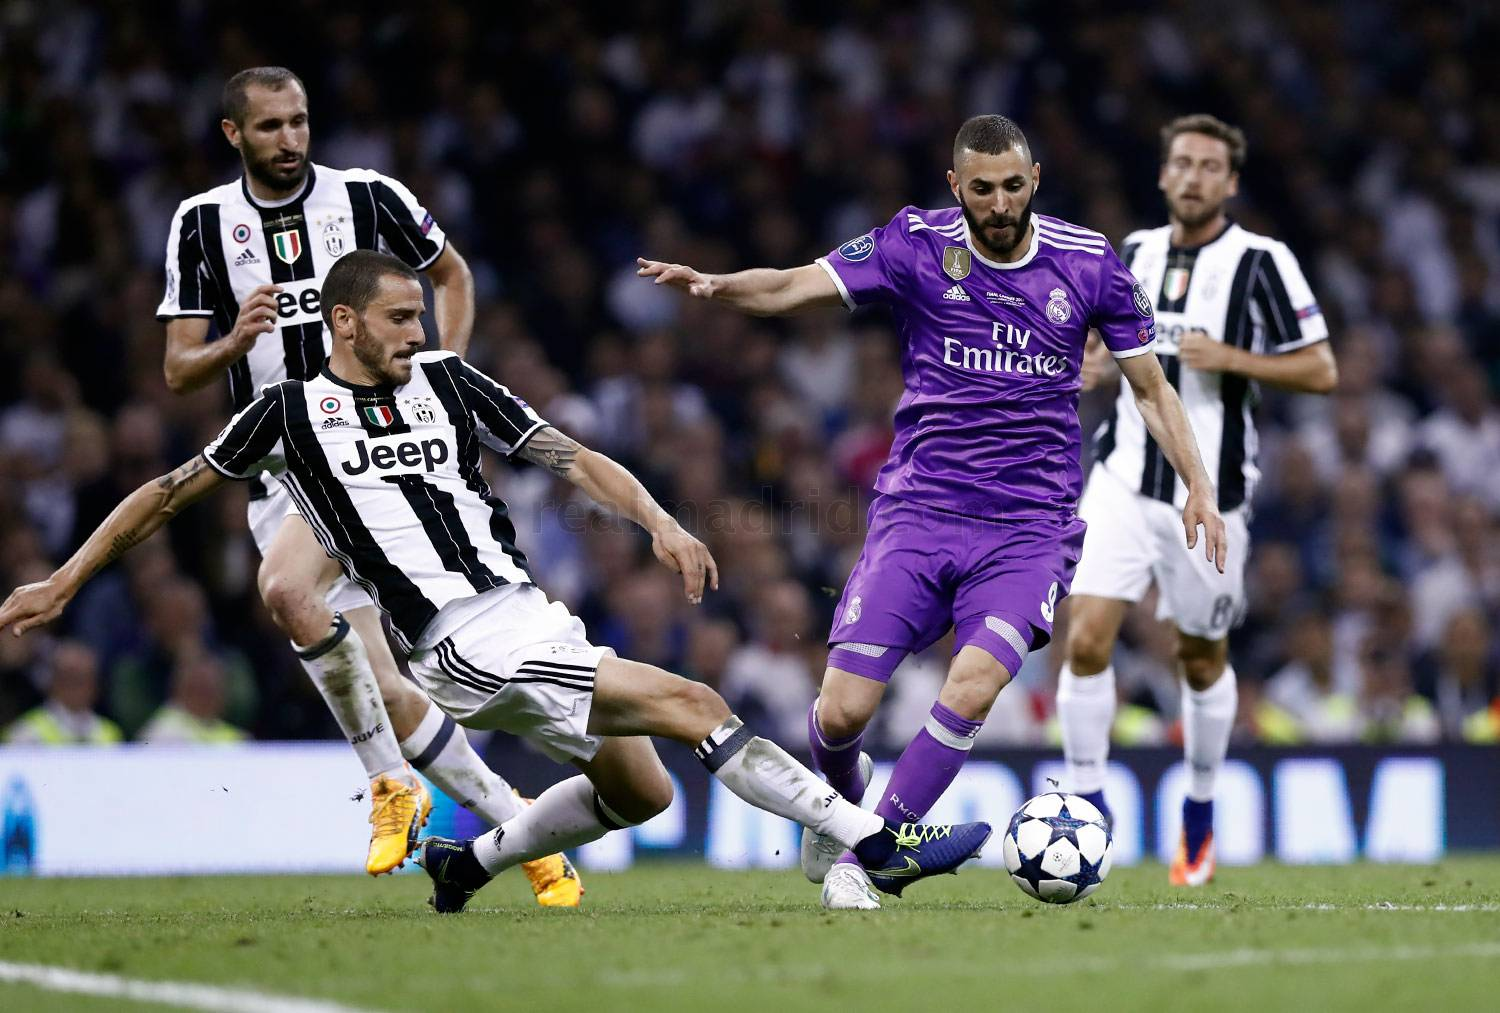 Real Madrid - Juventus - Real Madrid - 04-06-2017